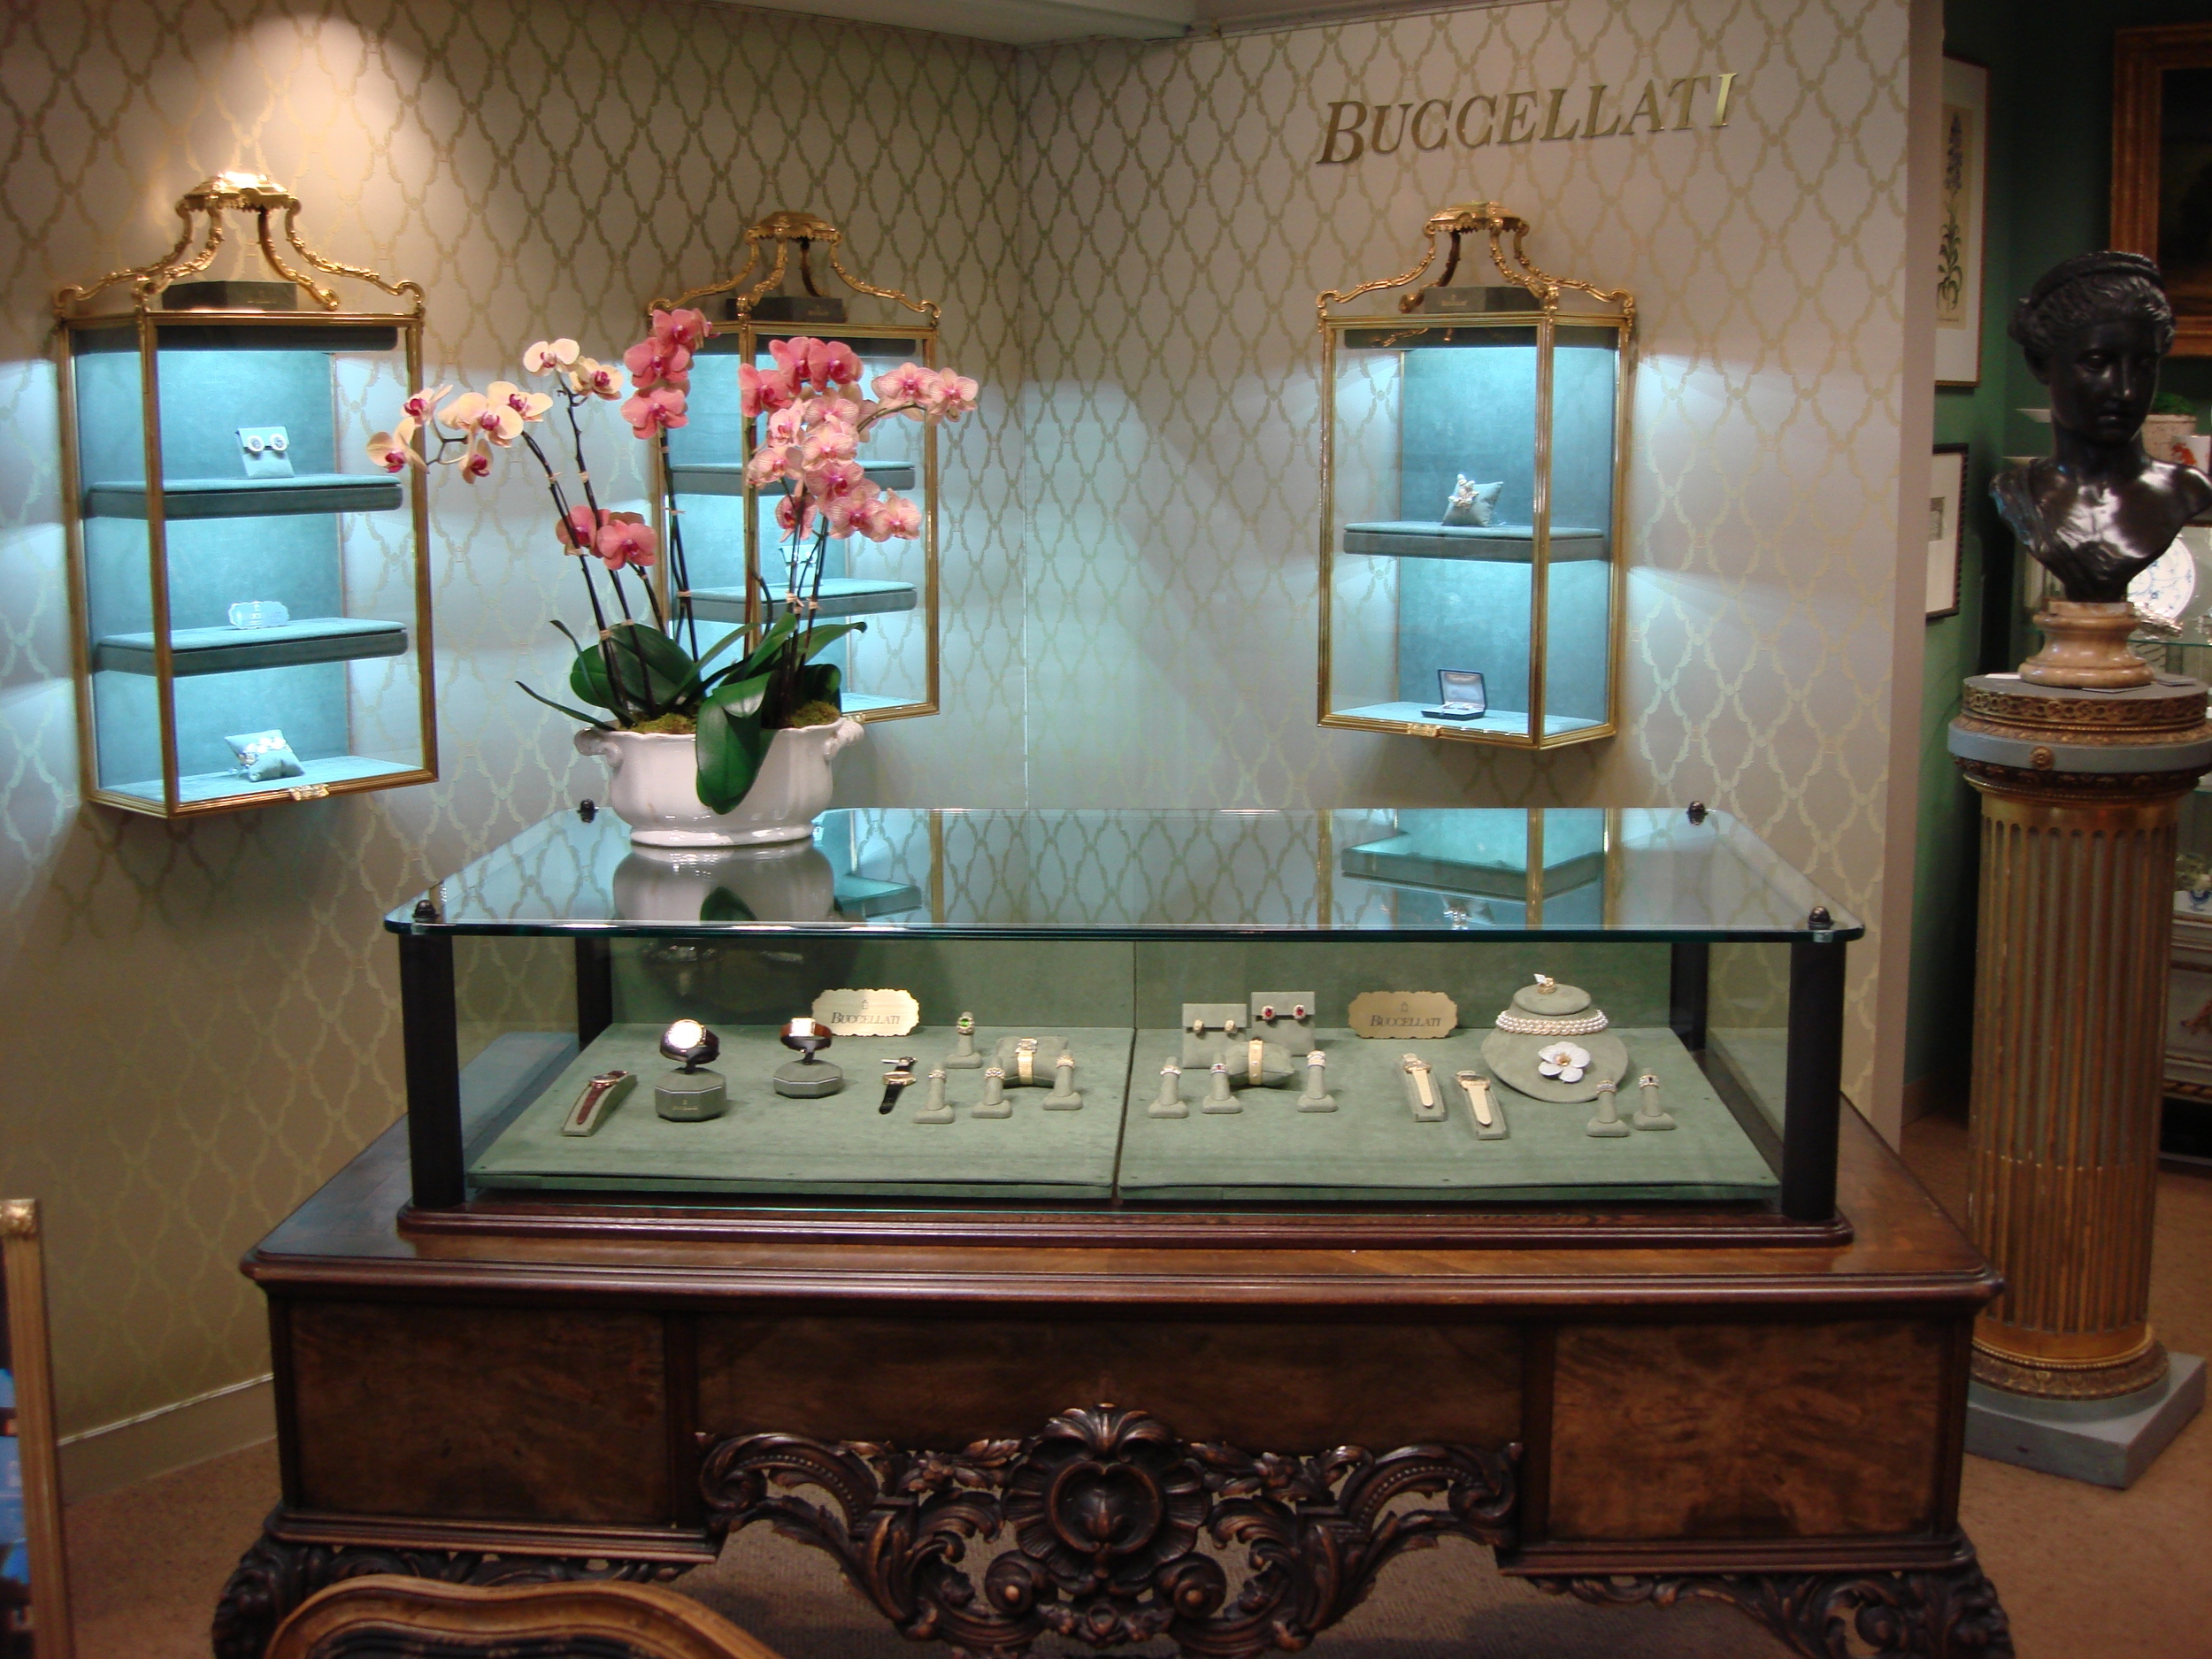 Buccellati Boutique